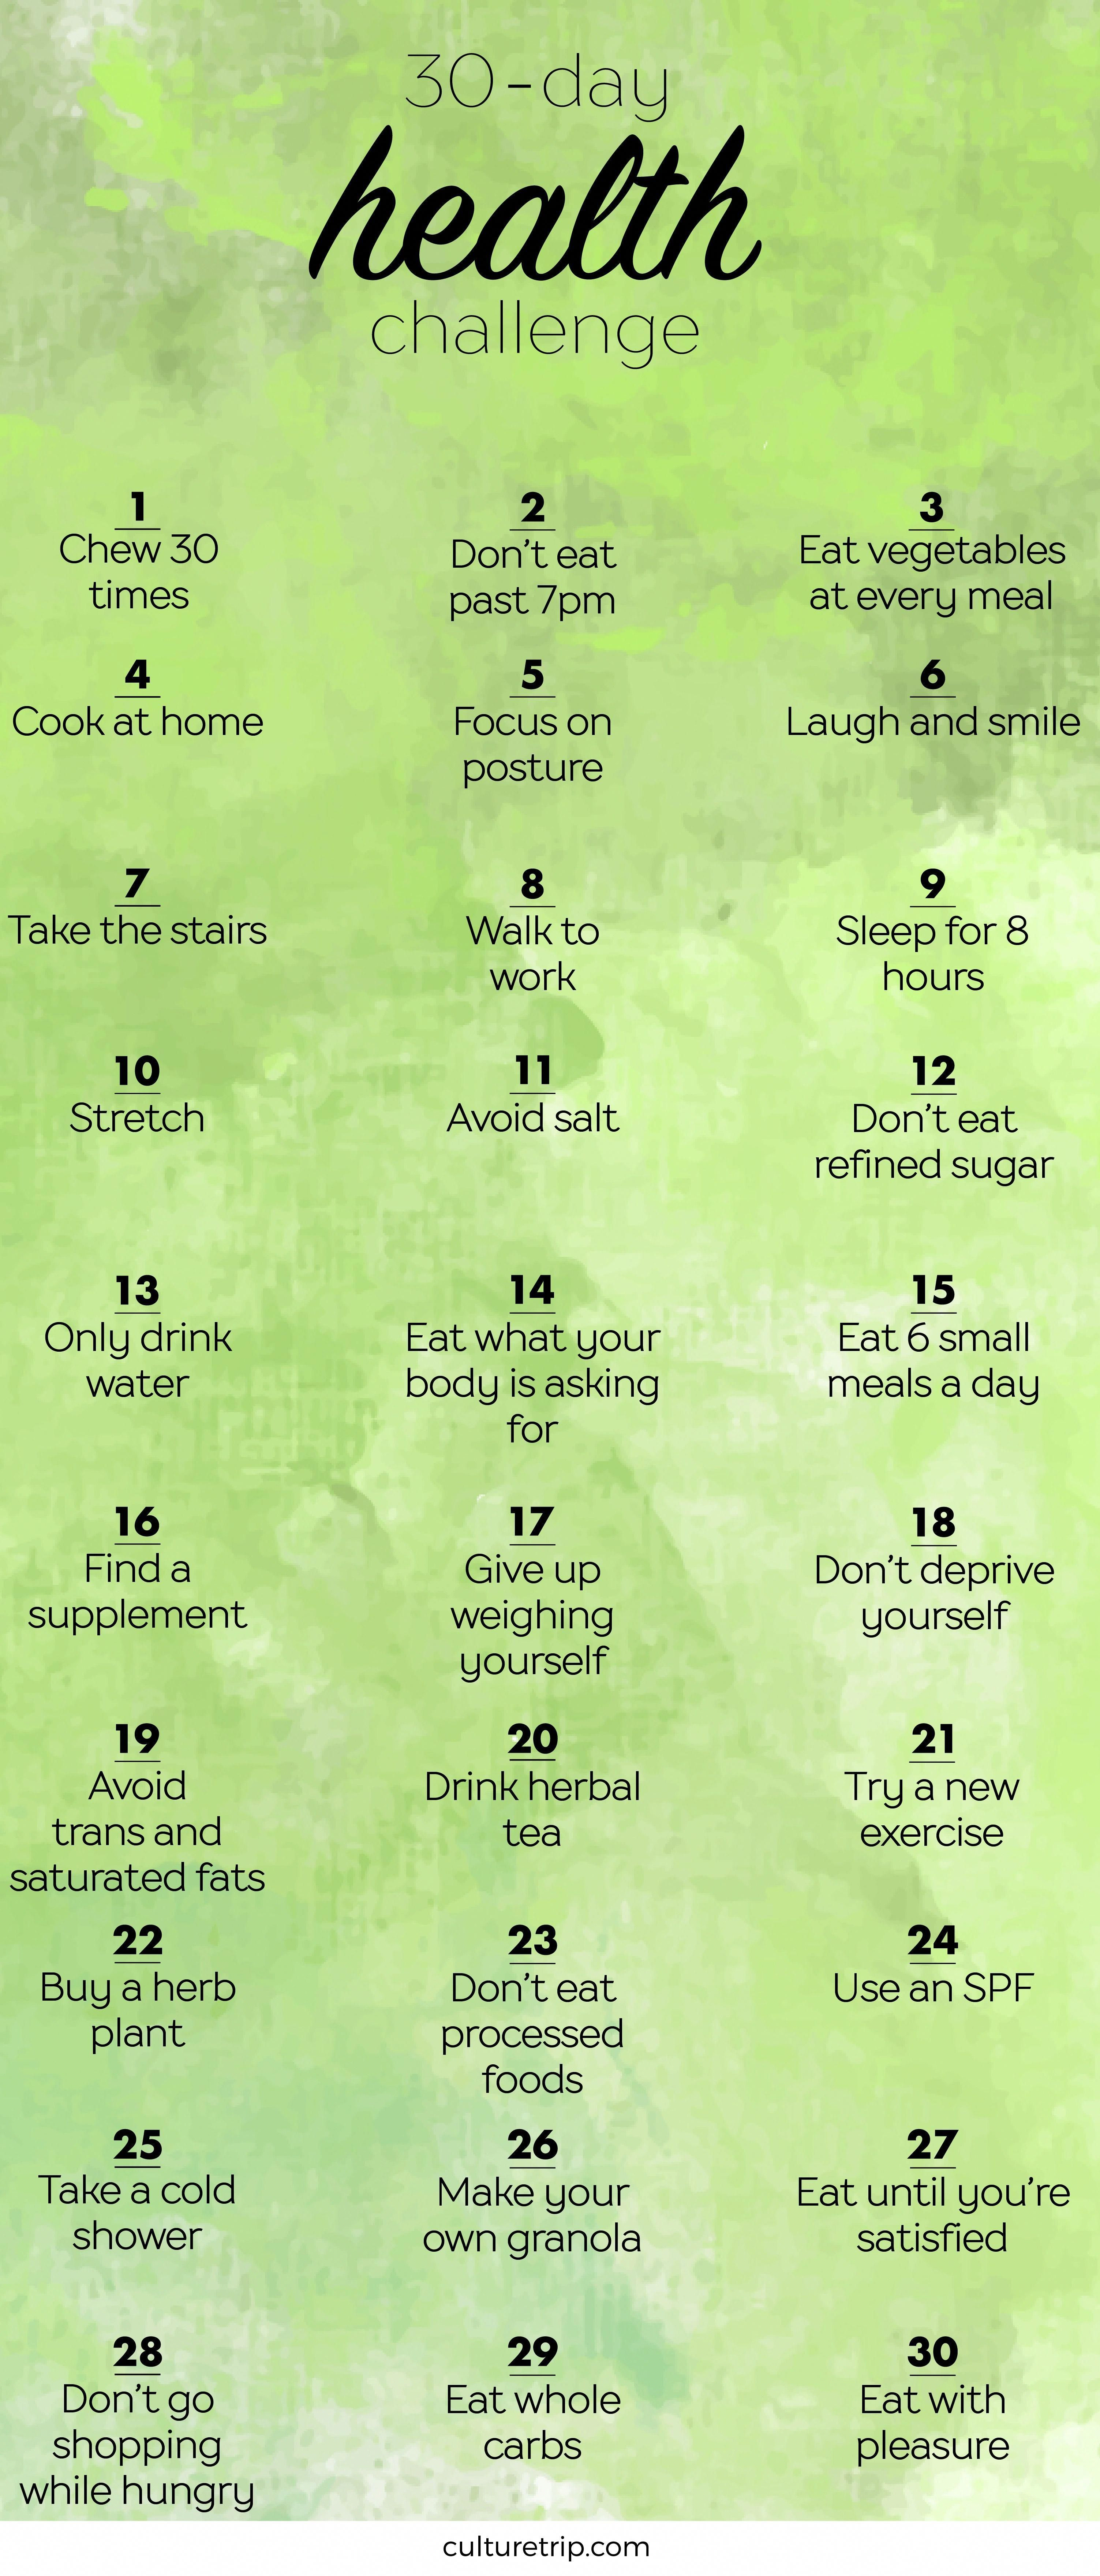 Instead of a health challenge, make this into sales challenge and giving an dollar amount for each i...